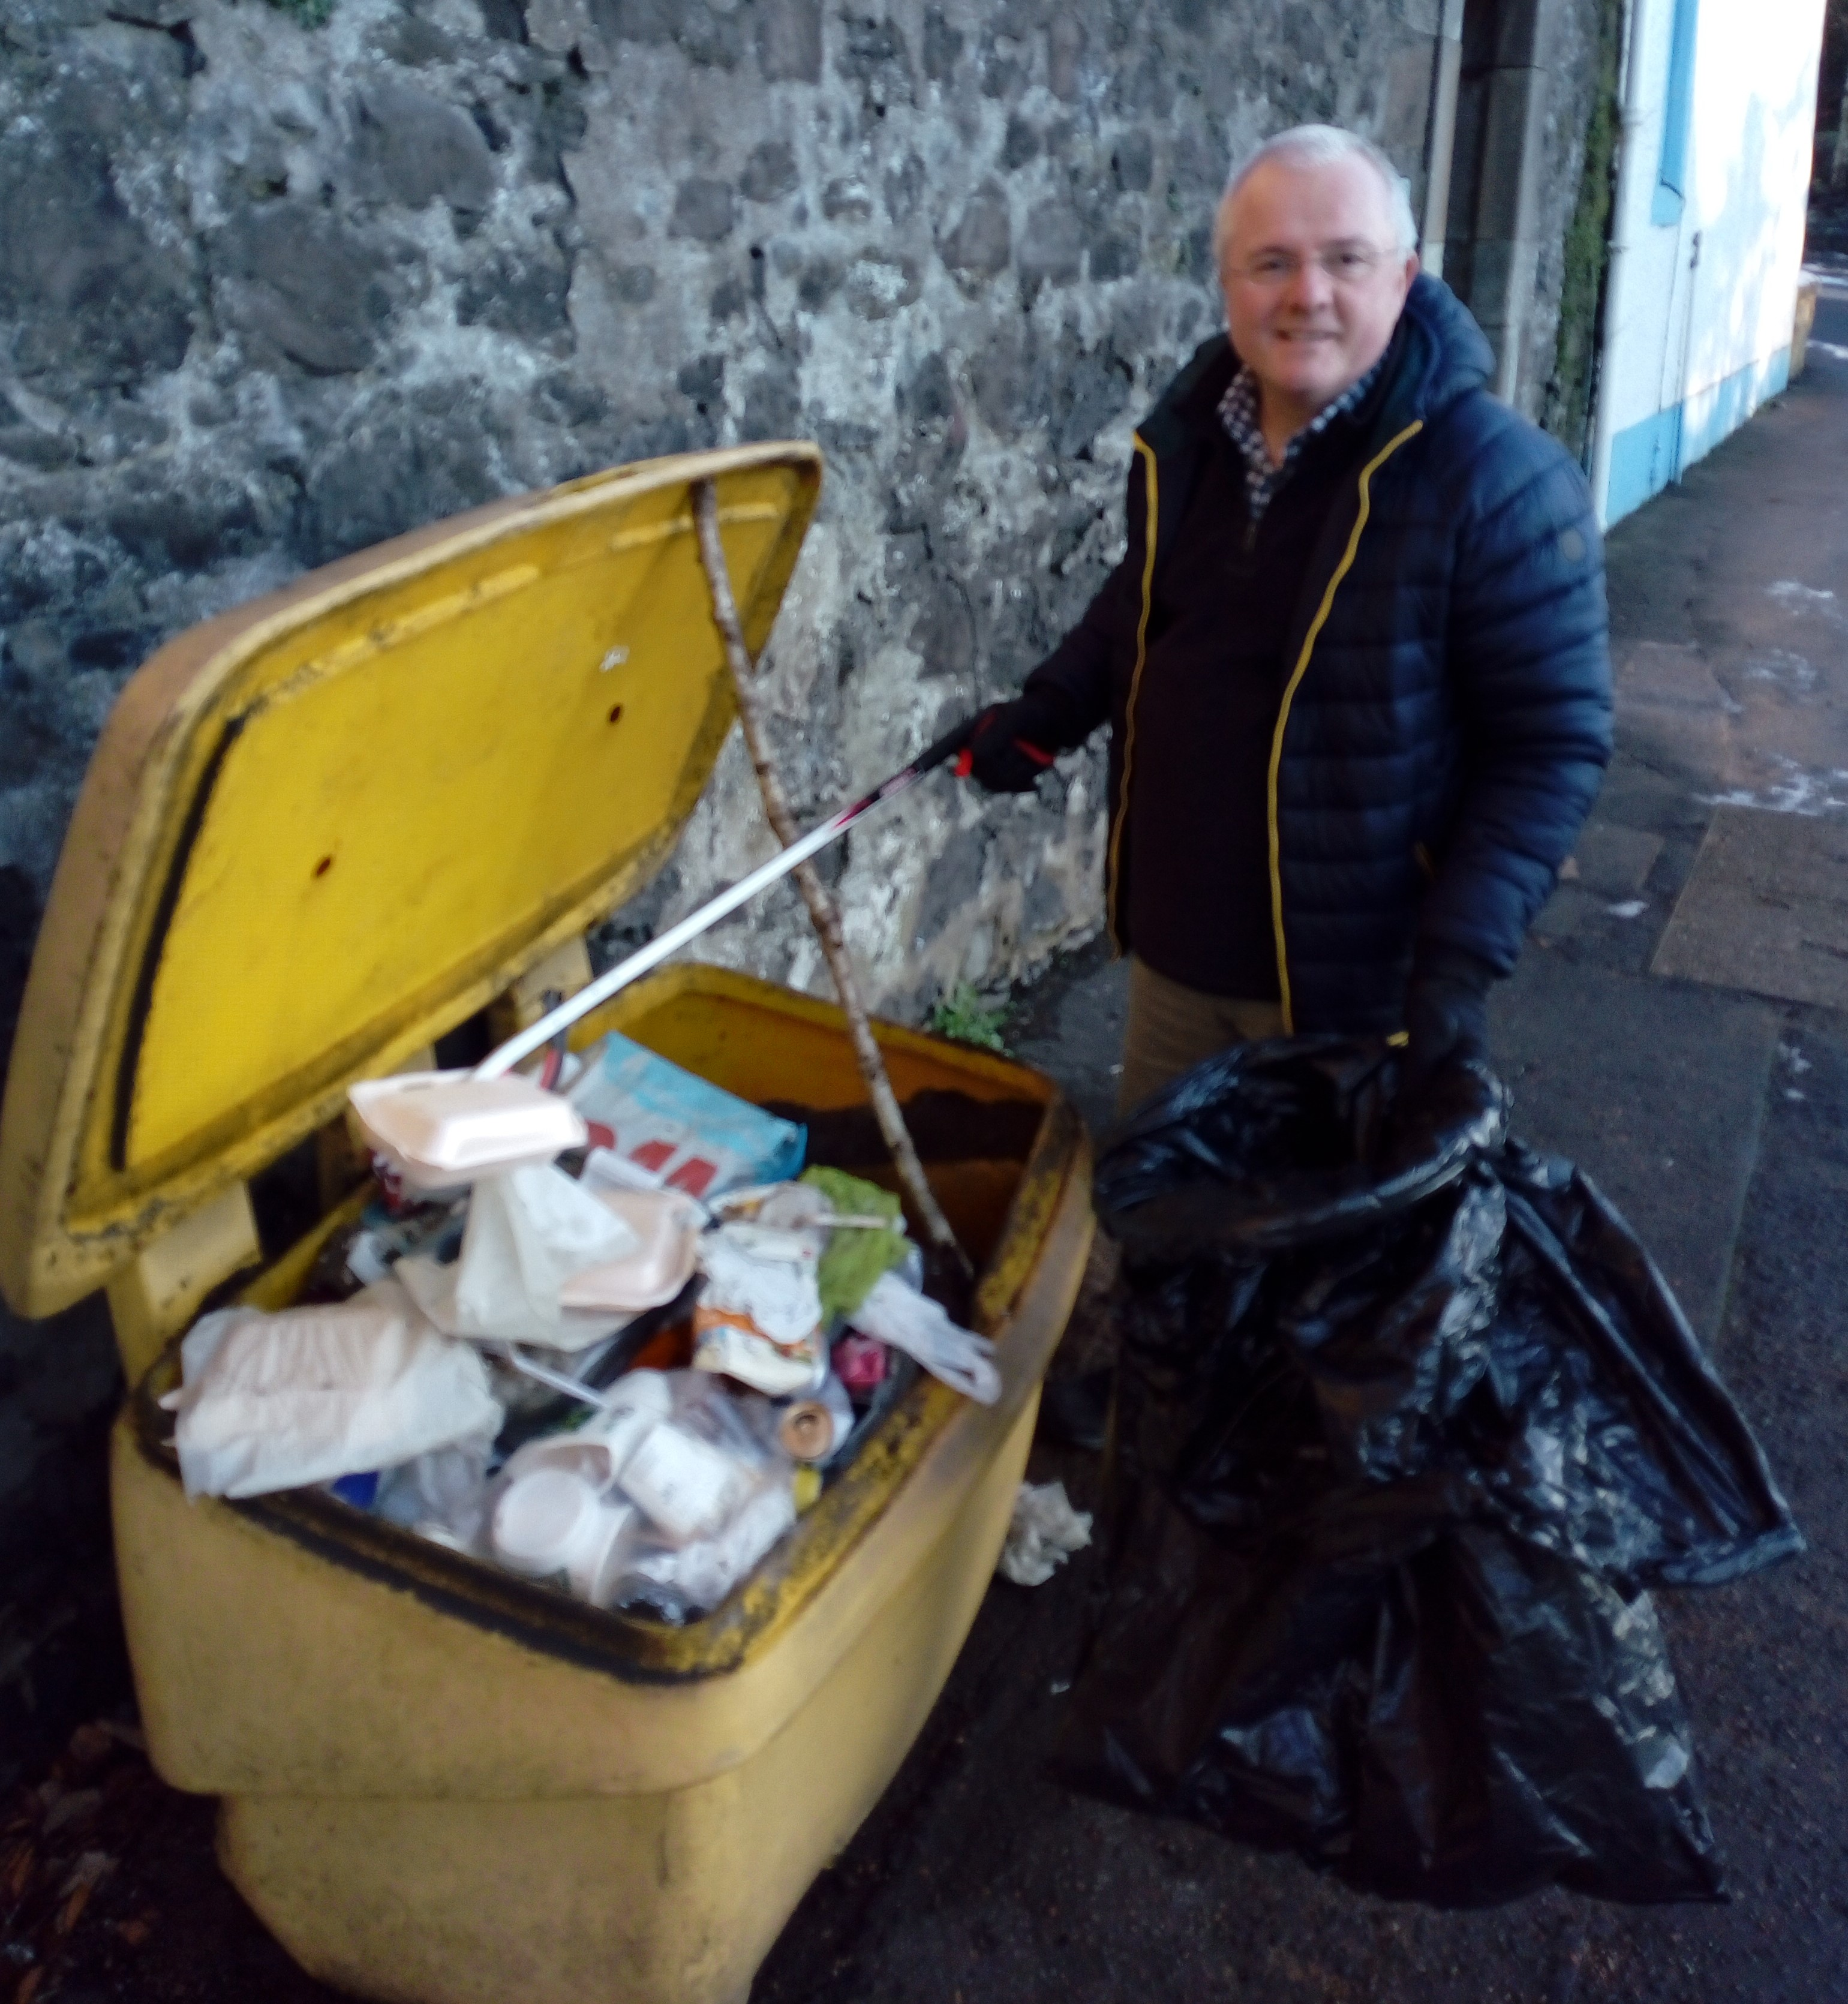 Cllr Barrett clears rubbish from a grit-bin so residents can get at the salt to treat their area.